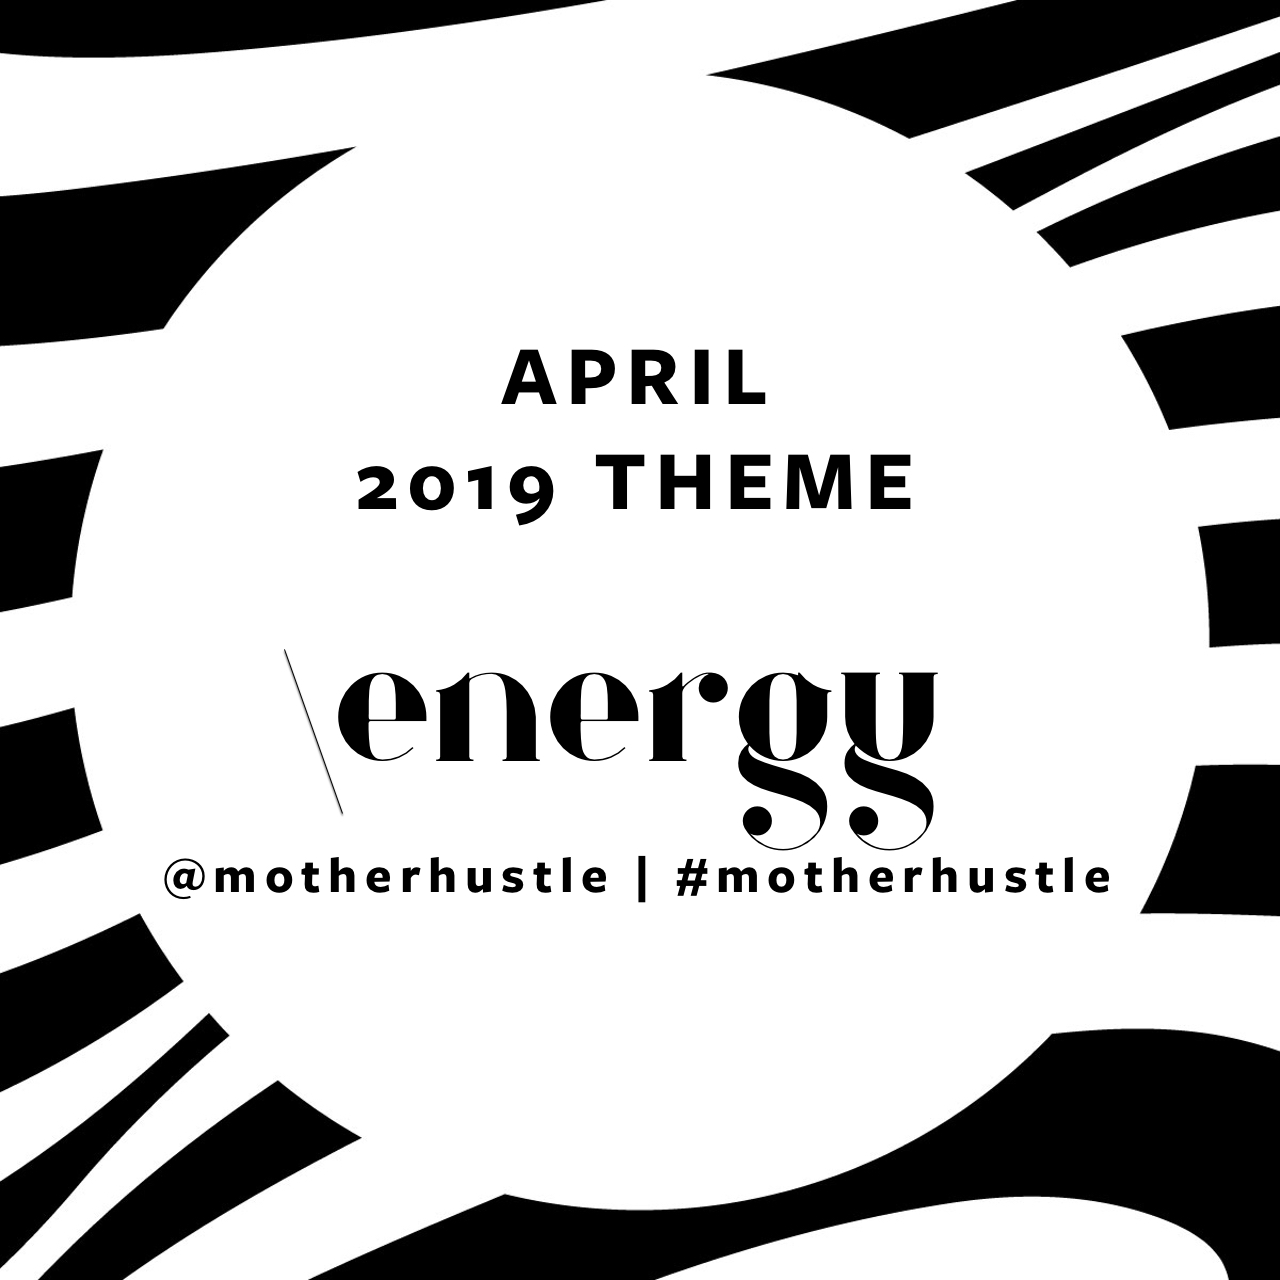 MotherHustle Theme April 2019 - Energy